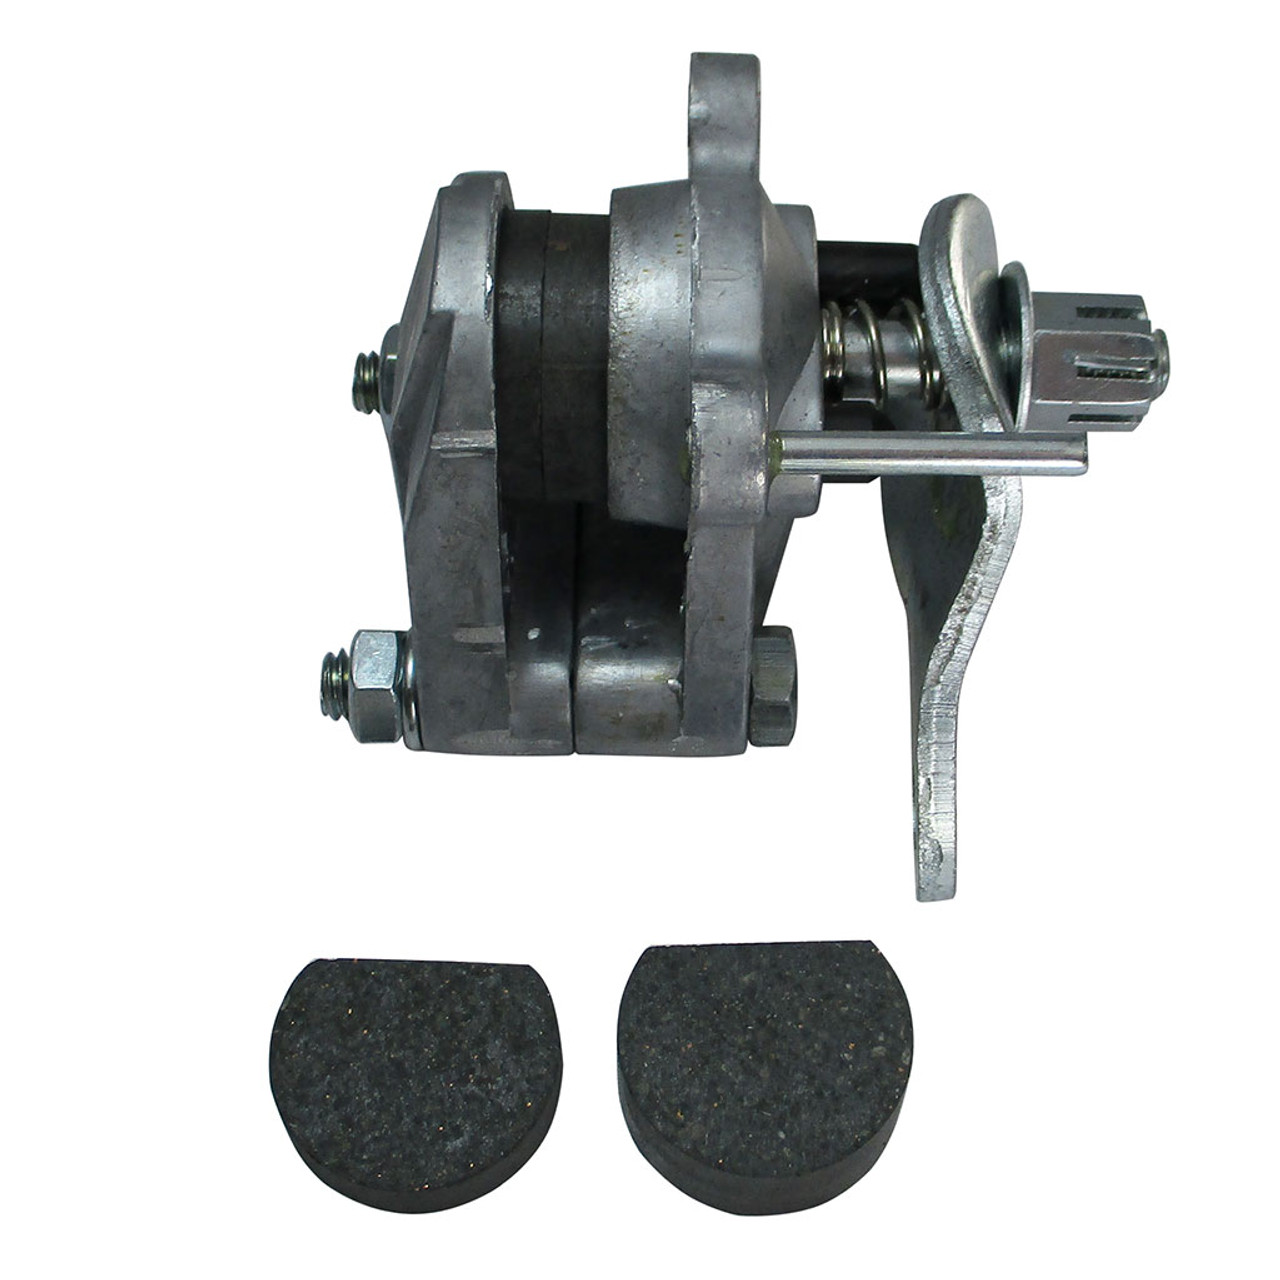 Universal Mechanical Disc Brake Assembly with Replacement Pucks